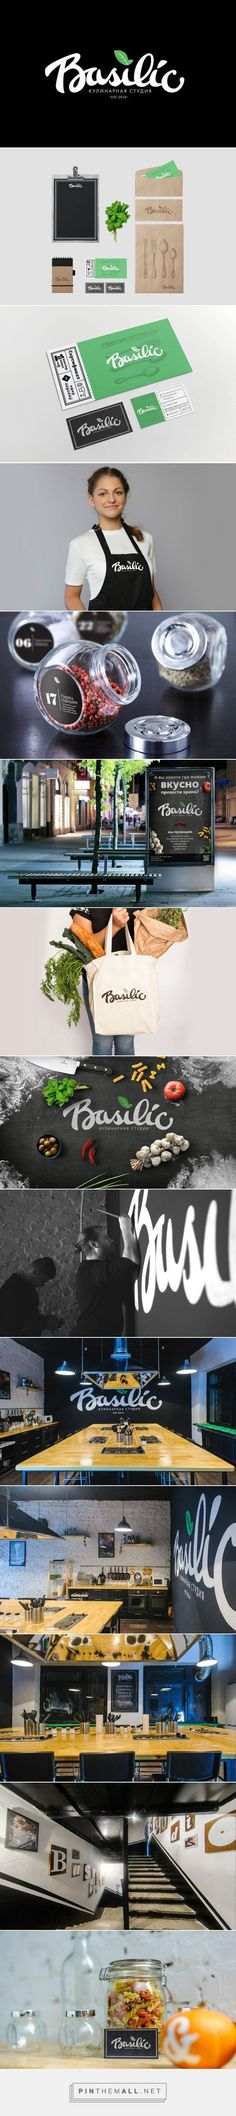 Identity / food / restaurant / Basilic Branding by Stepan Solodkov | Fivestar Branding – Design and Branding Agency & Inspiration Gallery